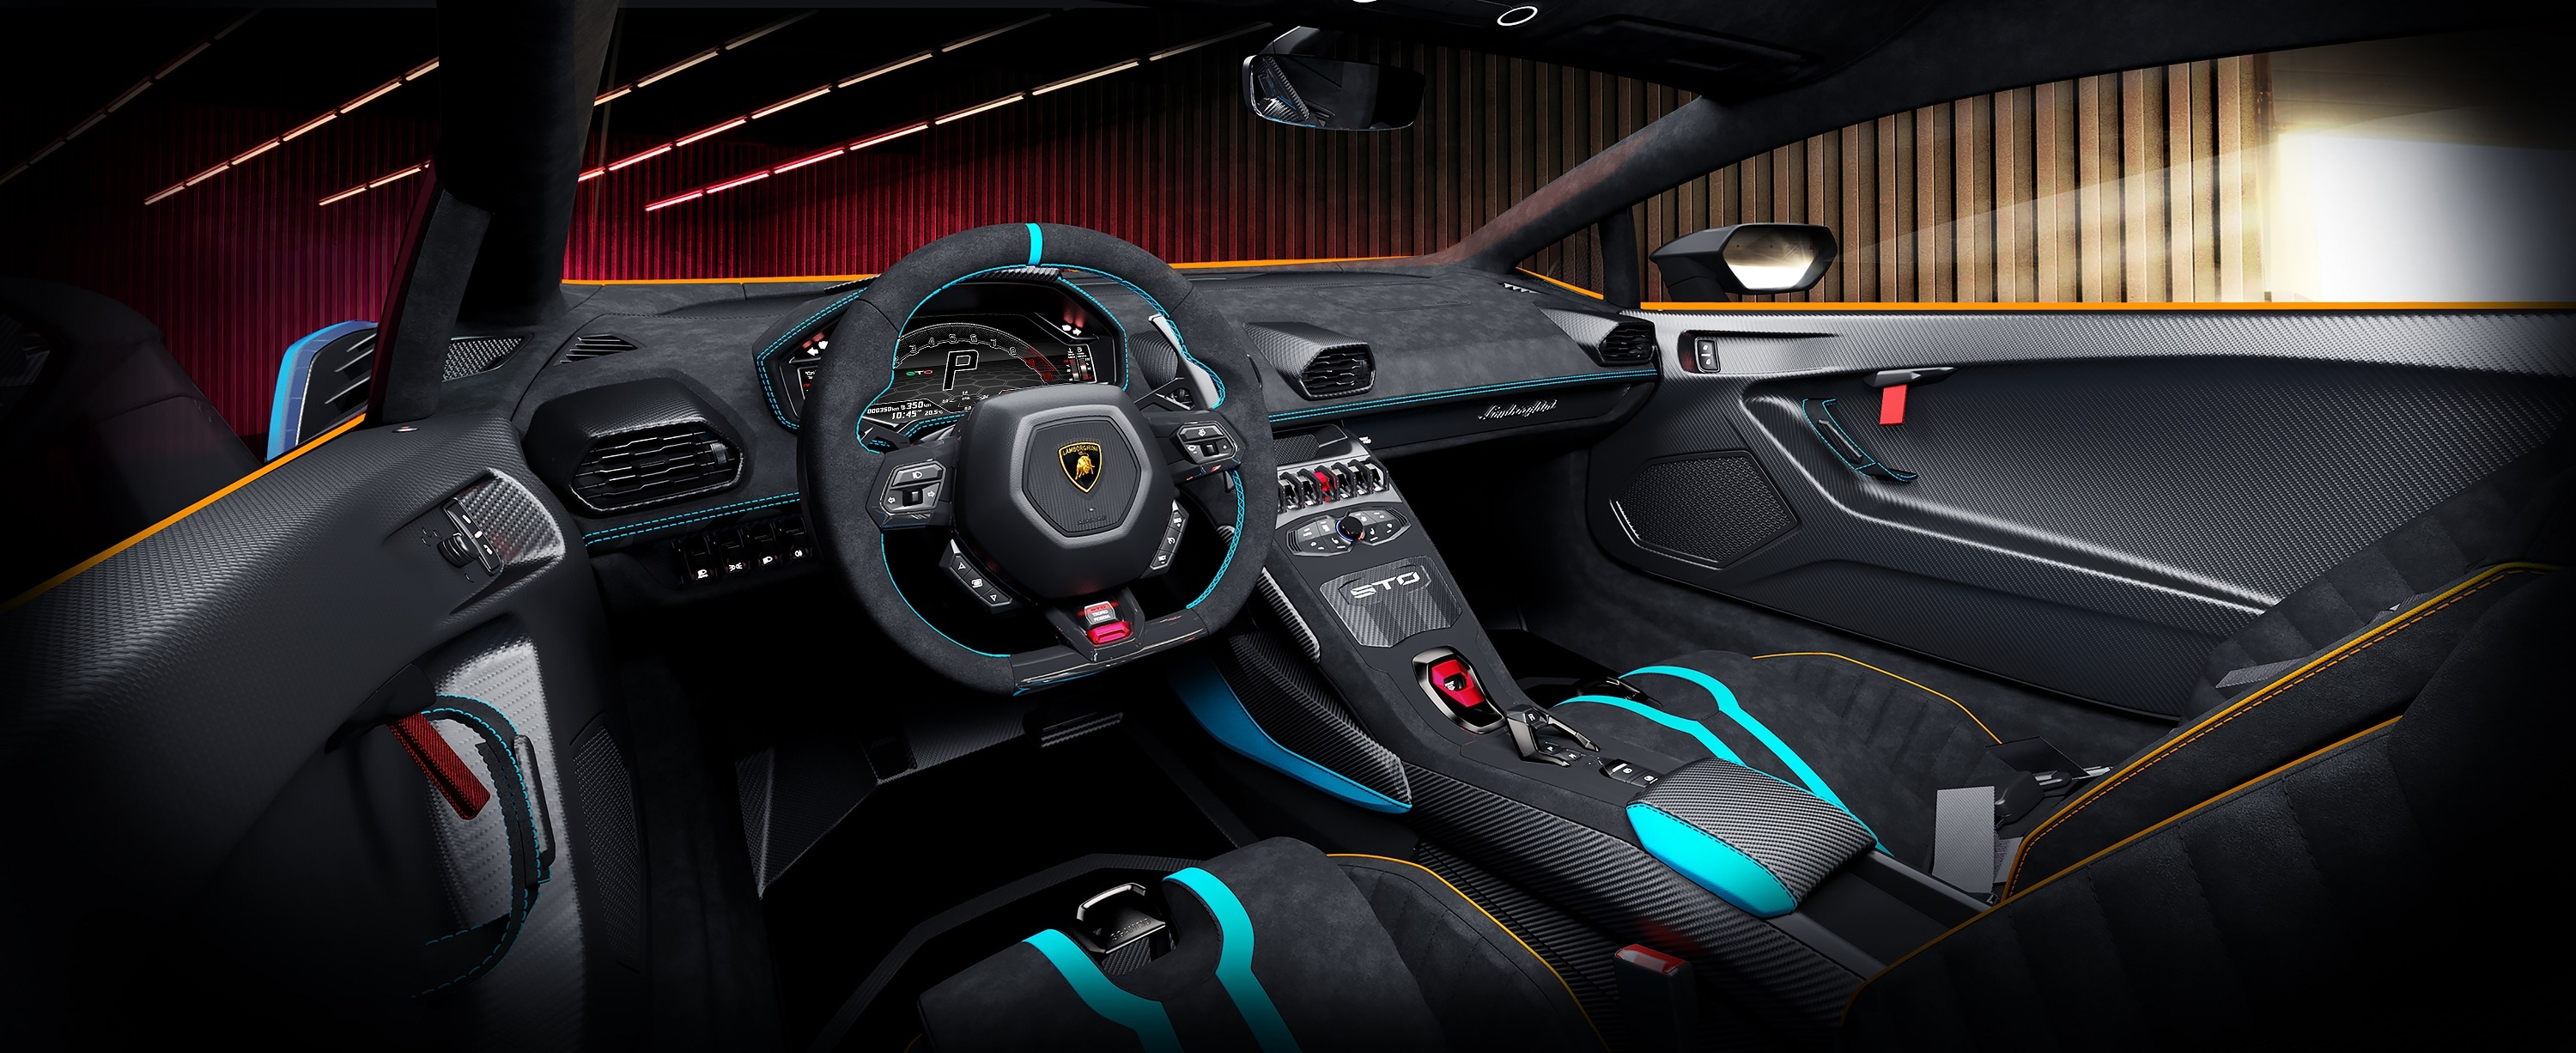 Carbon fibre materials feature inside as well with the seats, floor mats (instead of carpets) and door panel made of it. The car will have a New Human Machine Interface (HMI) graphics feature on the touch screen inside and it is this that is the brain that controls almost every aspect including drive mode indicator, the LDVI system, tire pressures and brake temperatures.